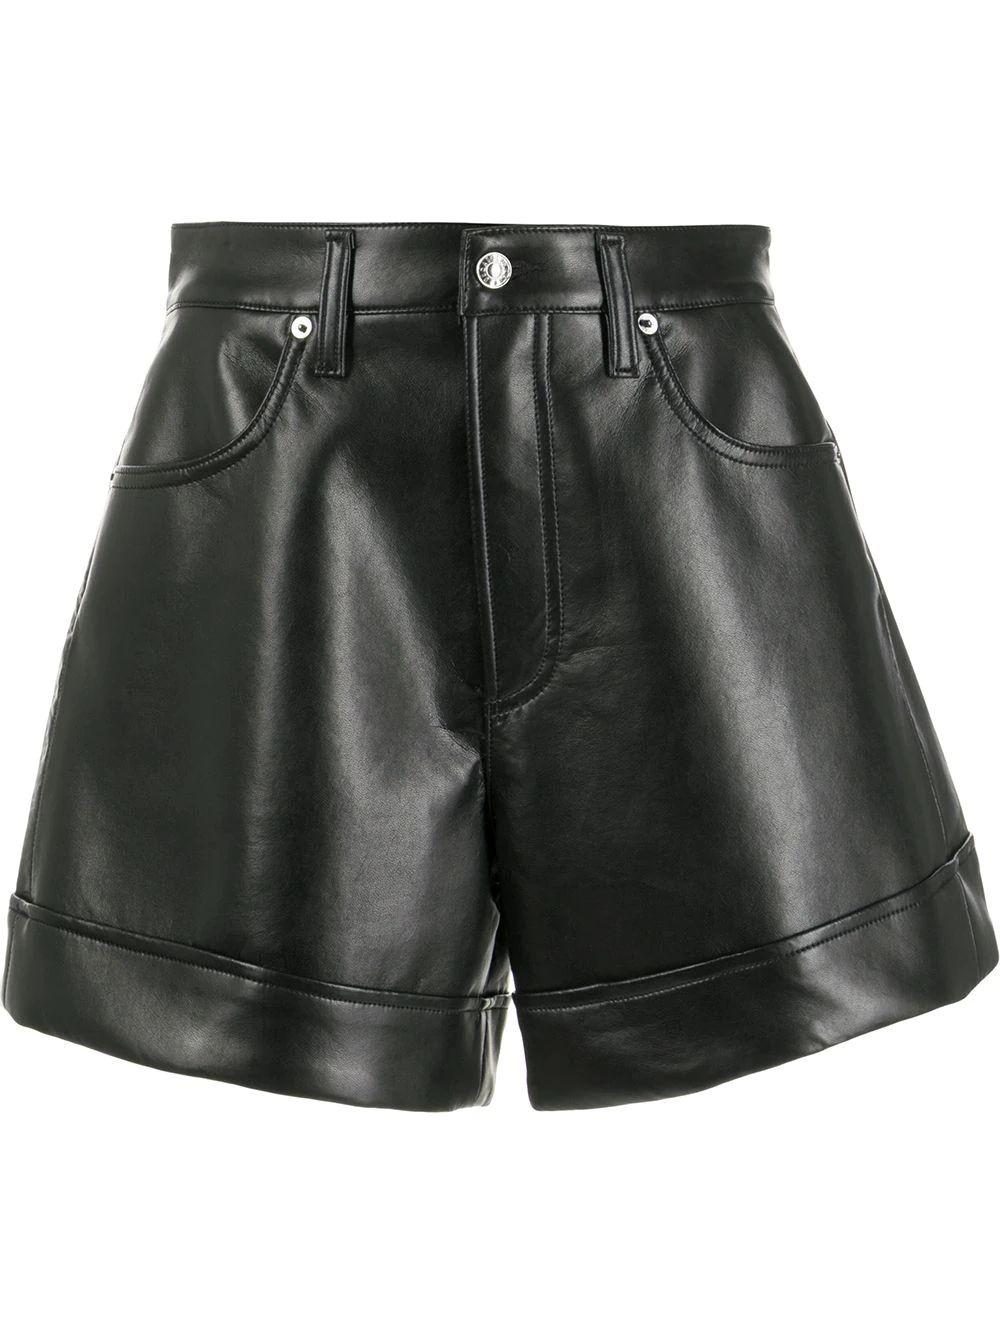 Recycled Leather Shorts